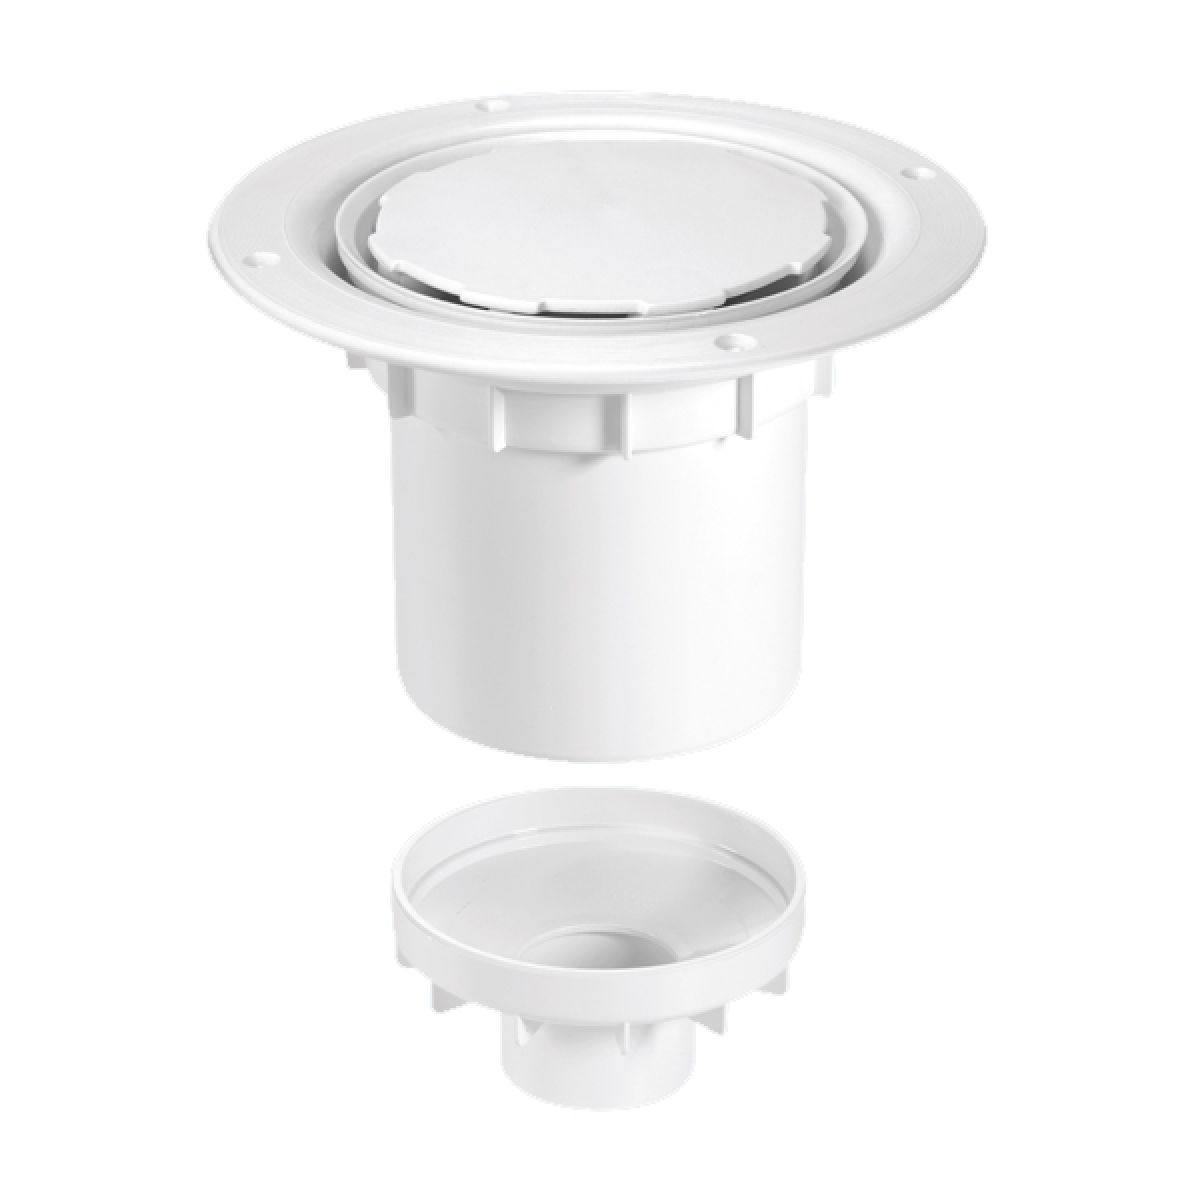 McAlpine TSG2WH-NSC 75mm Water Seal Trapped Gully White Plastic Clamp